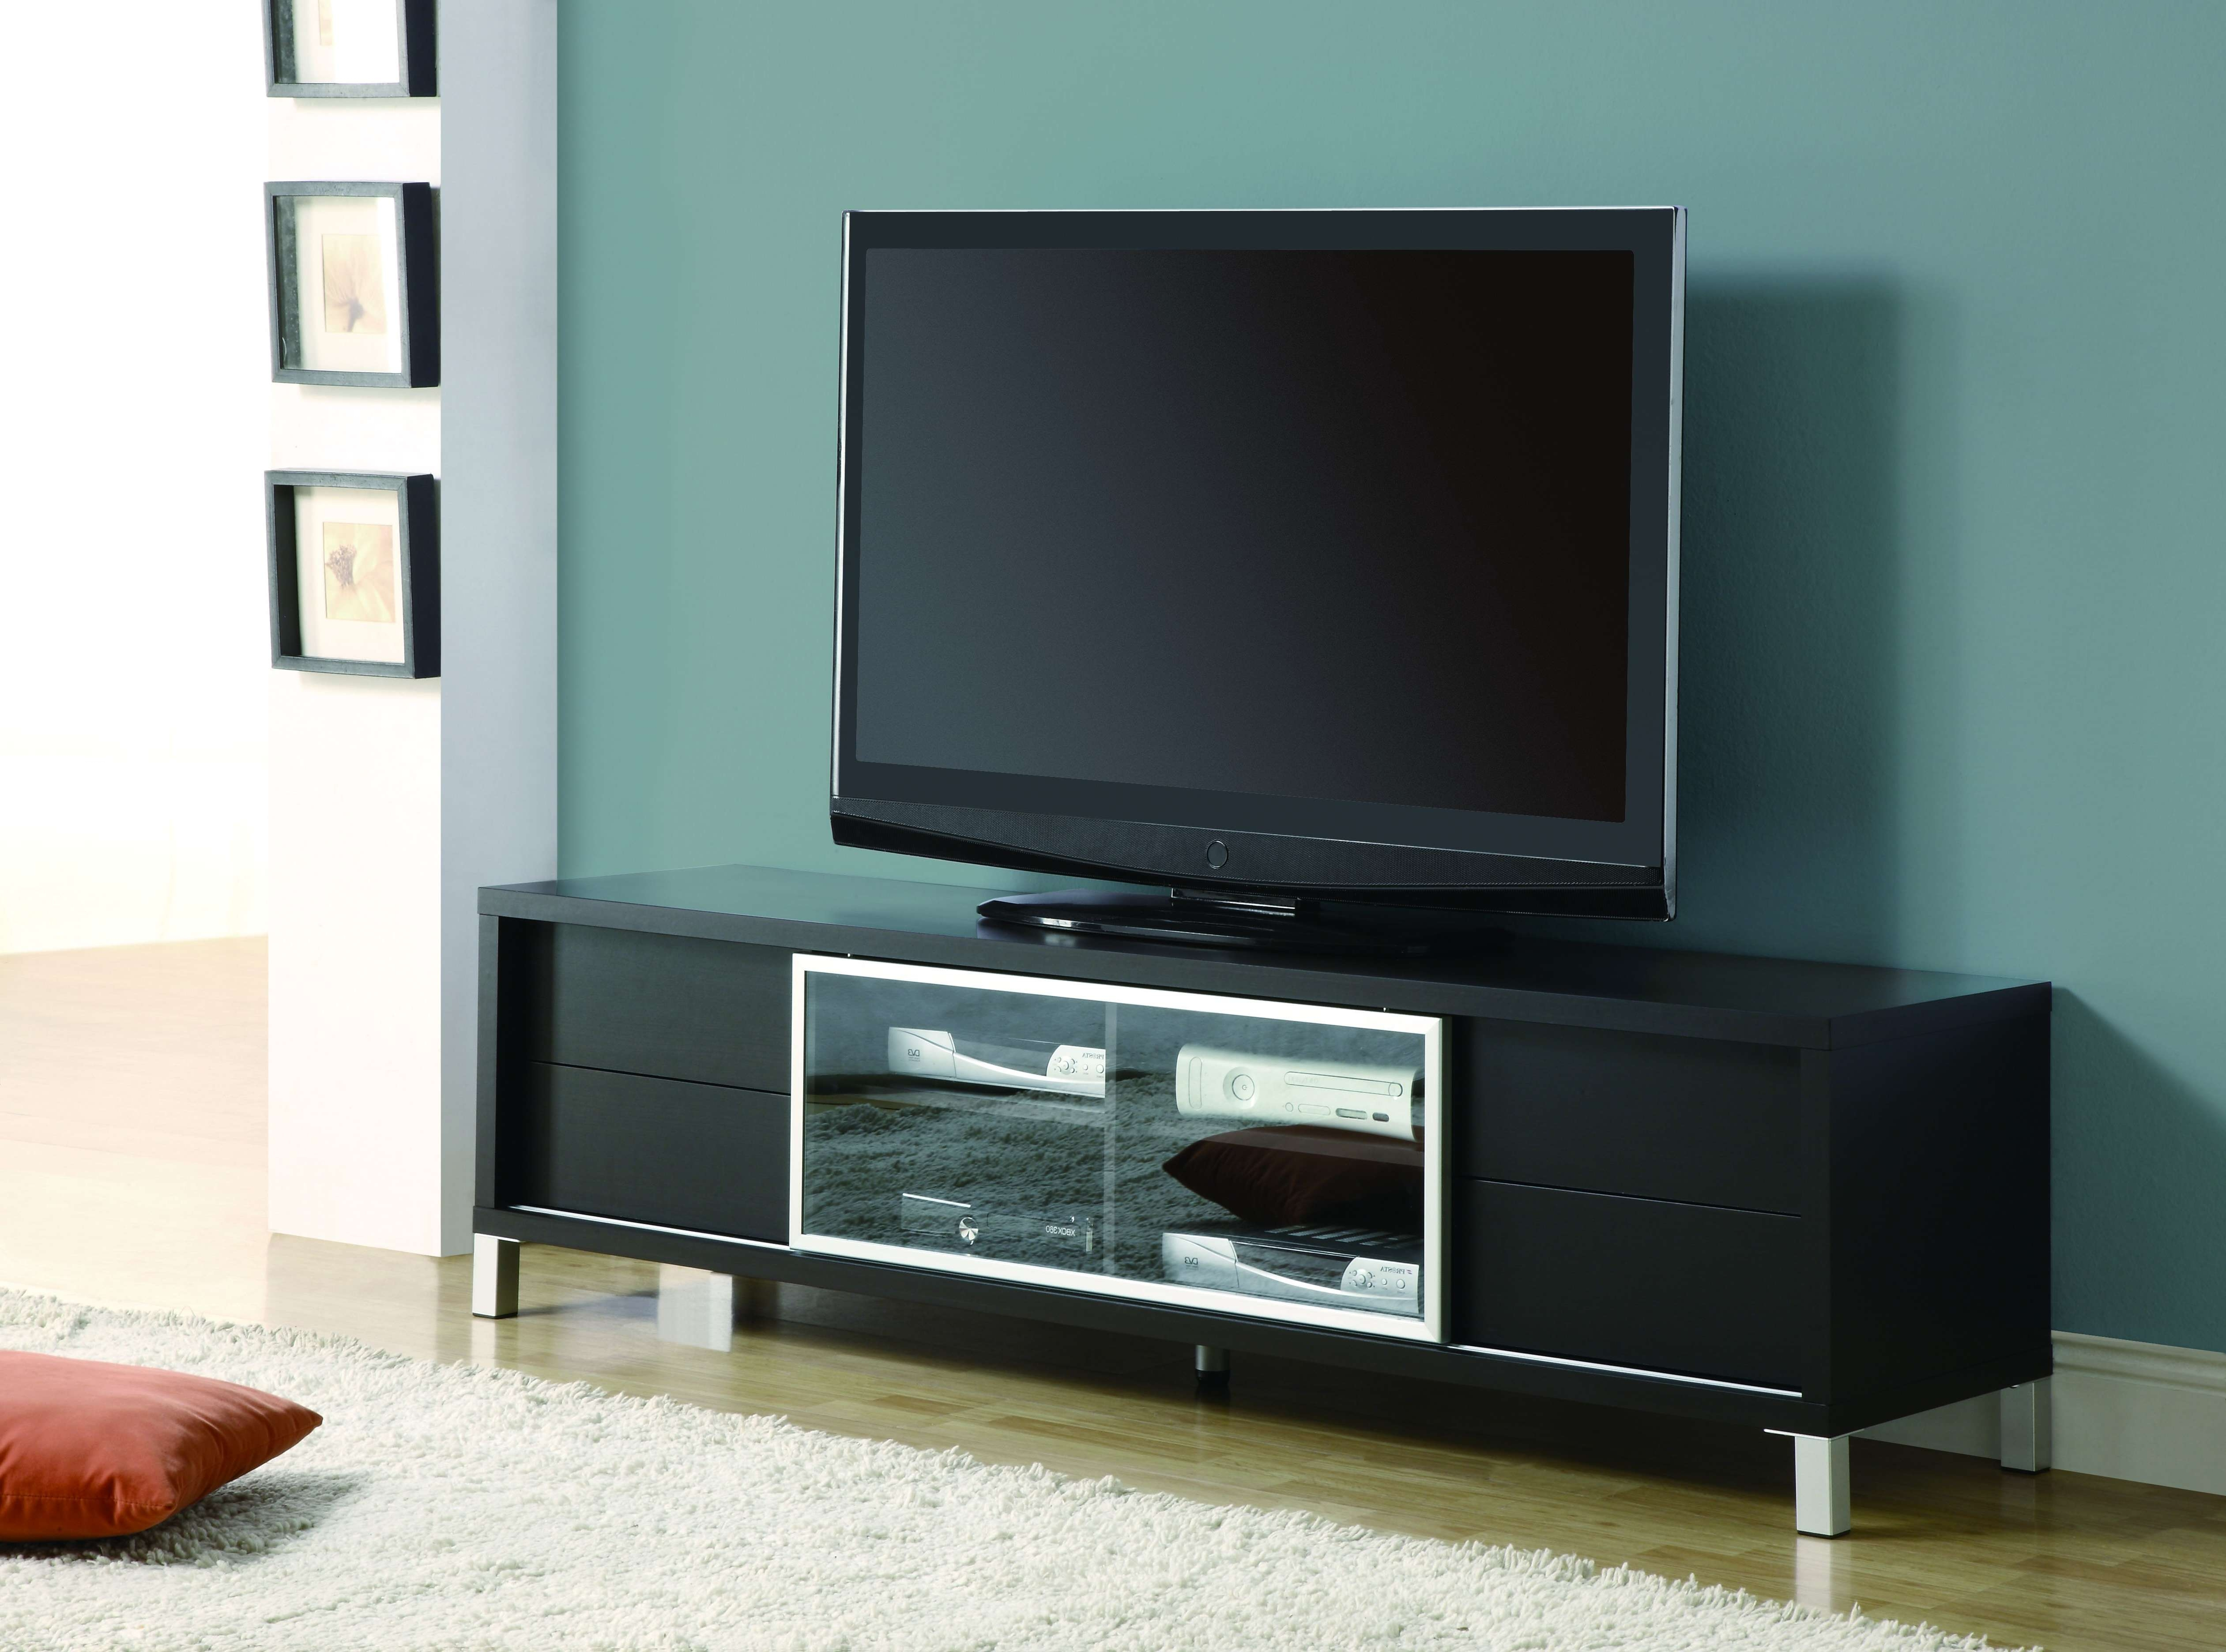 Furniture : Fancy Tv Stand Under 50 Big Lots Tv Stands Television With Contemporary Tv Stands For Flat Screens (View 7 of 15)